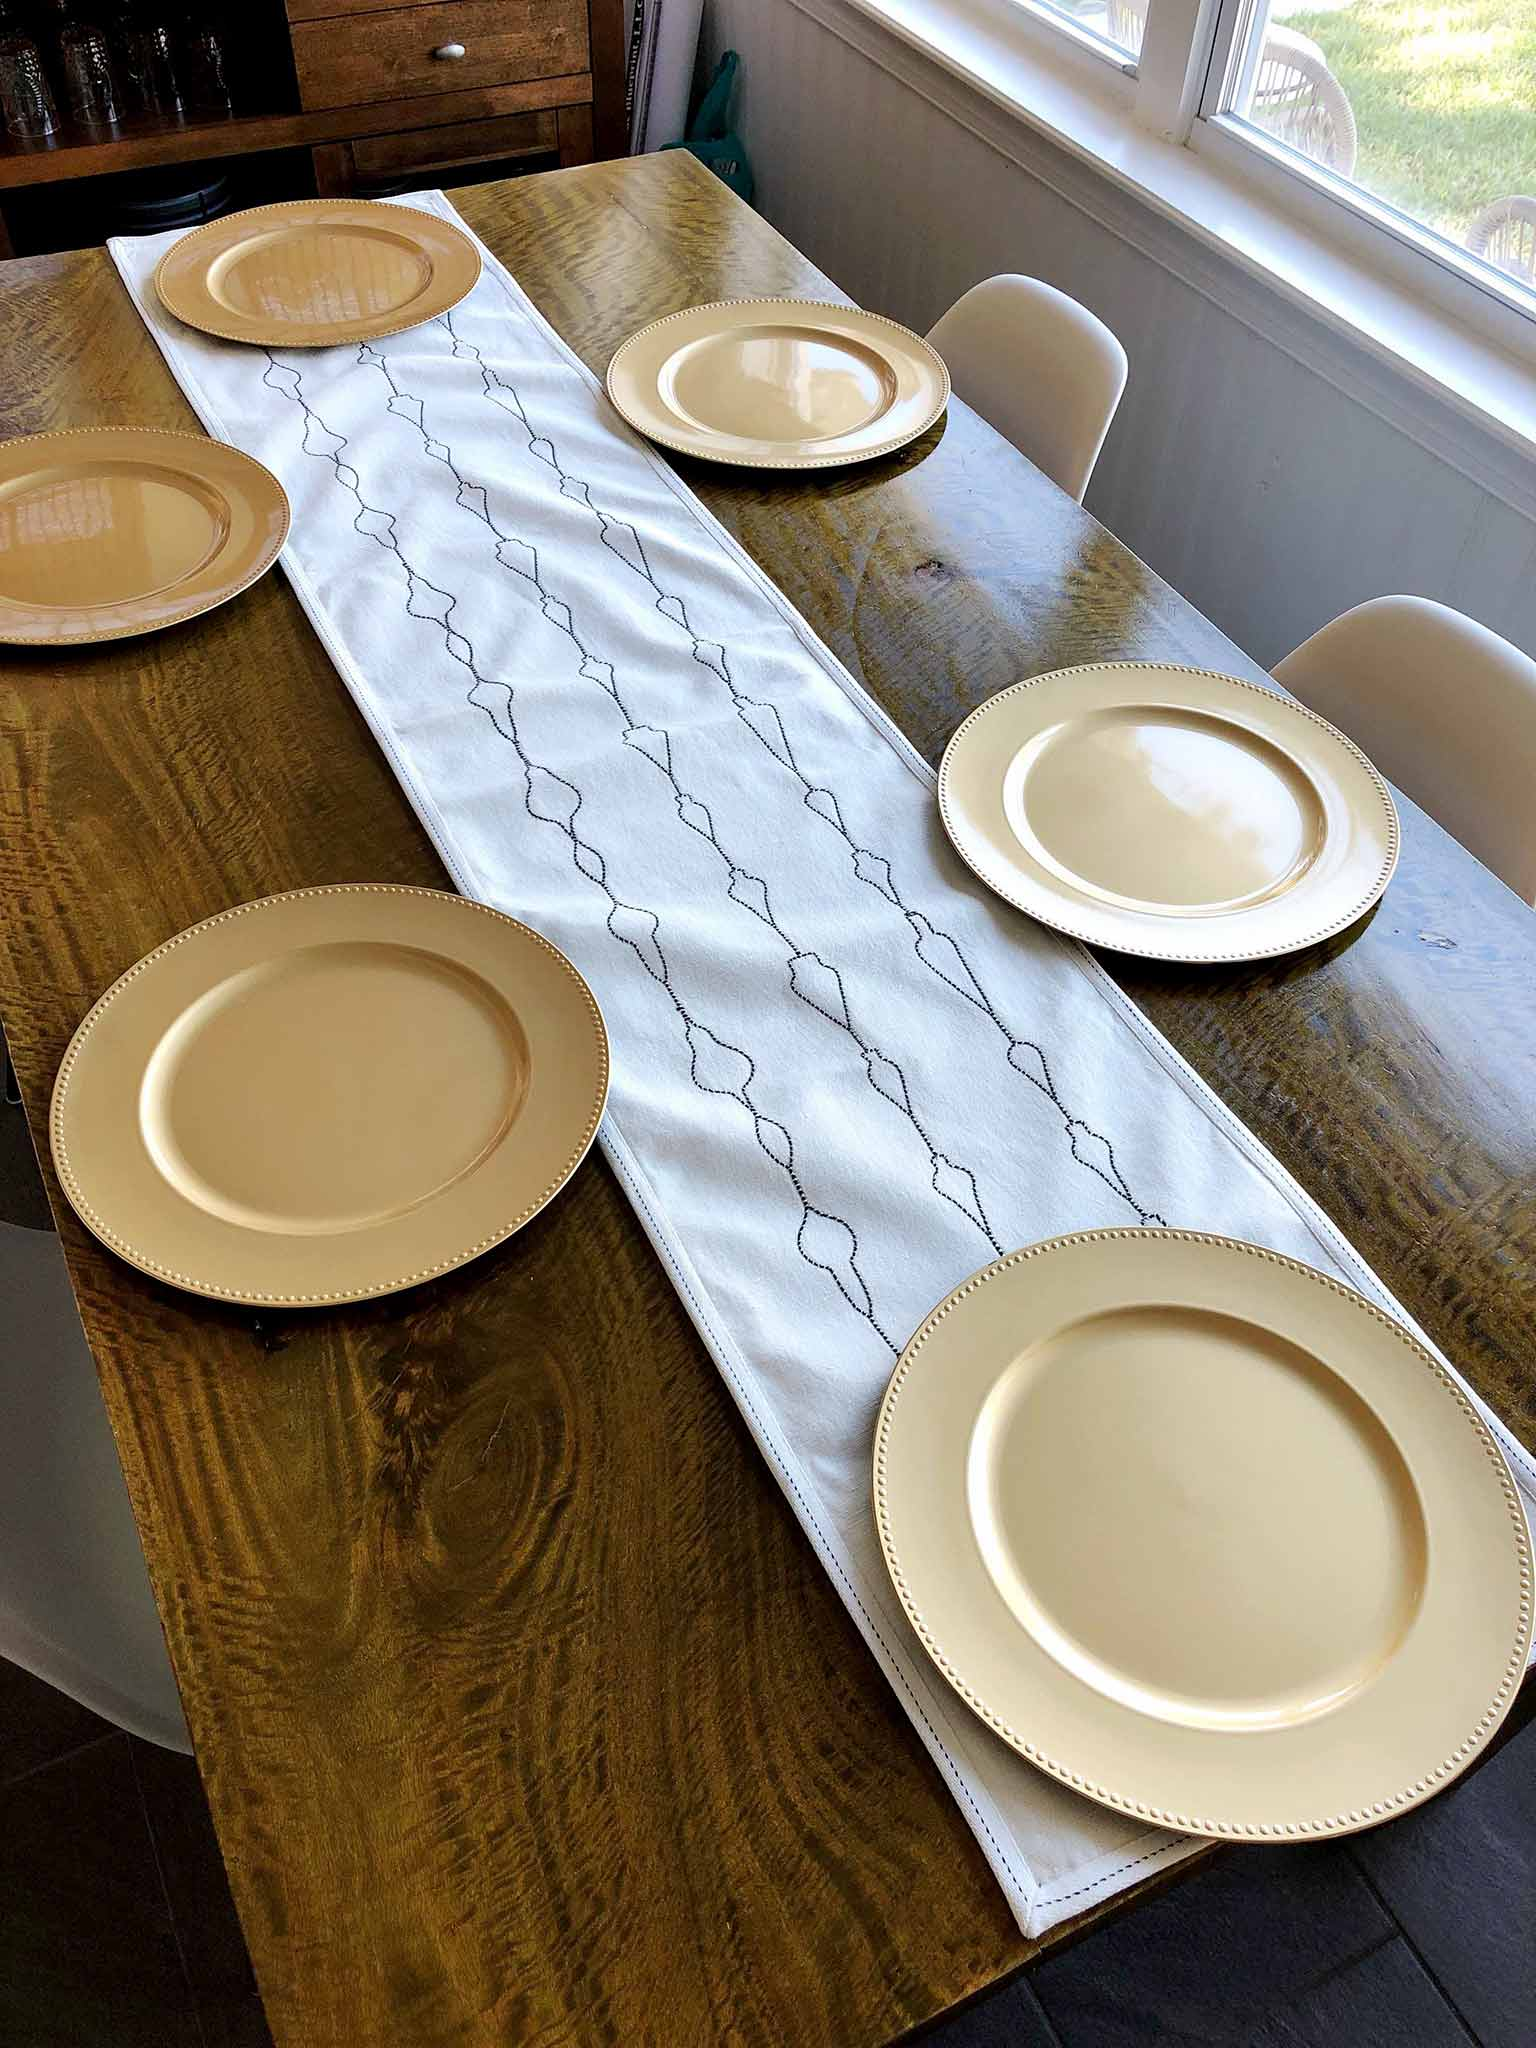 Table runner and gold chargers | How to Create a Beautiful Tablescape on a Budget | That Homebird Life Blog #christmasdecor #tablescape